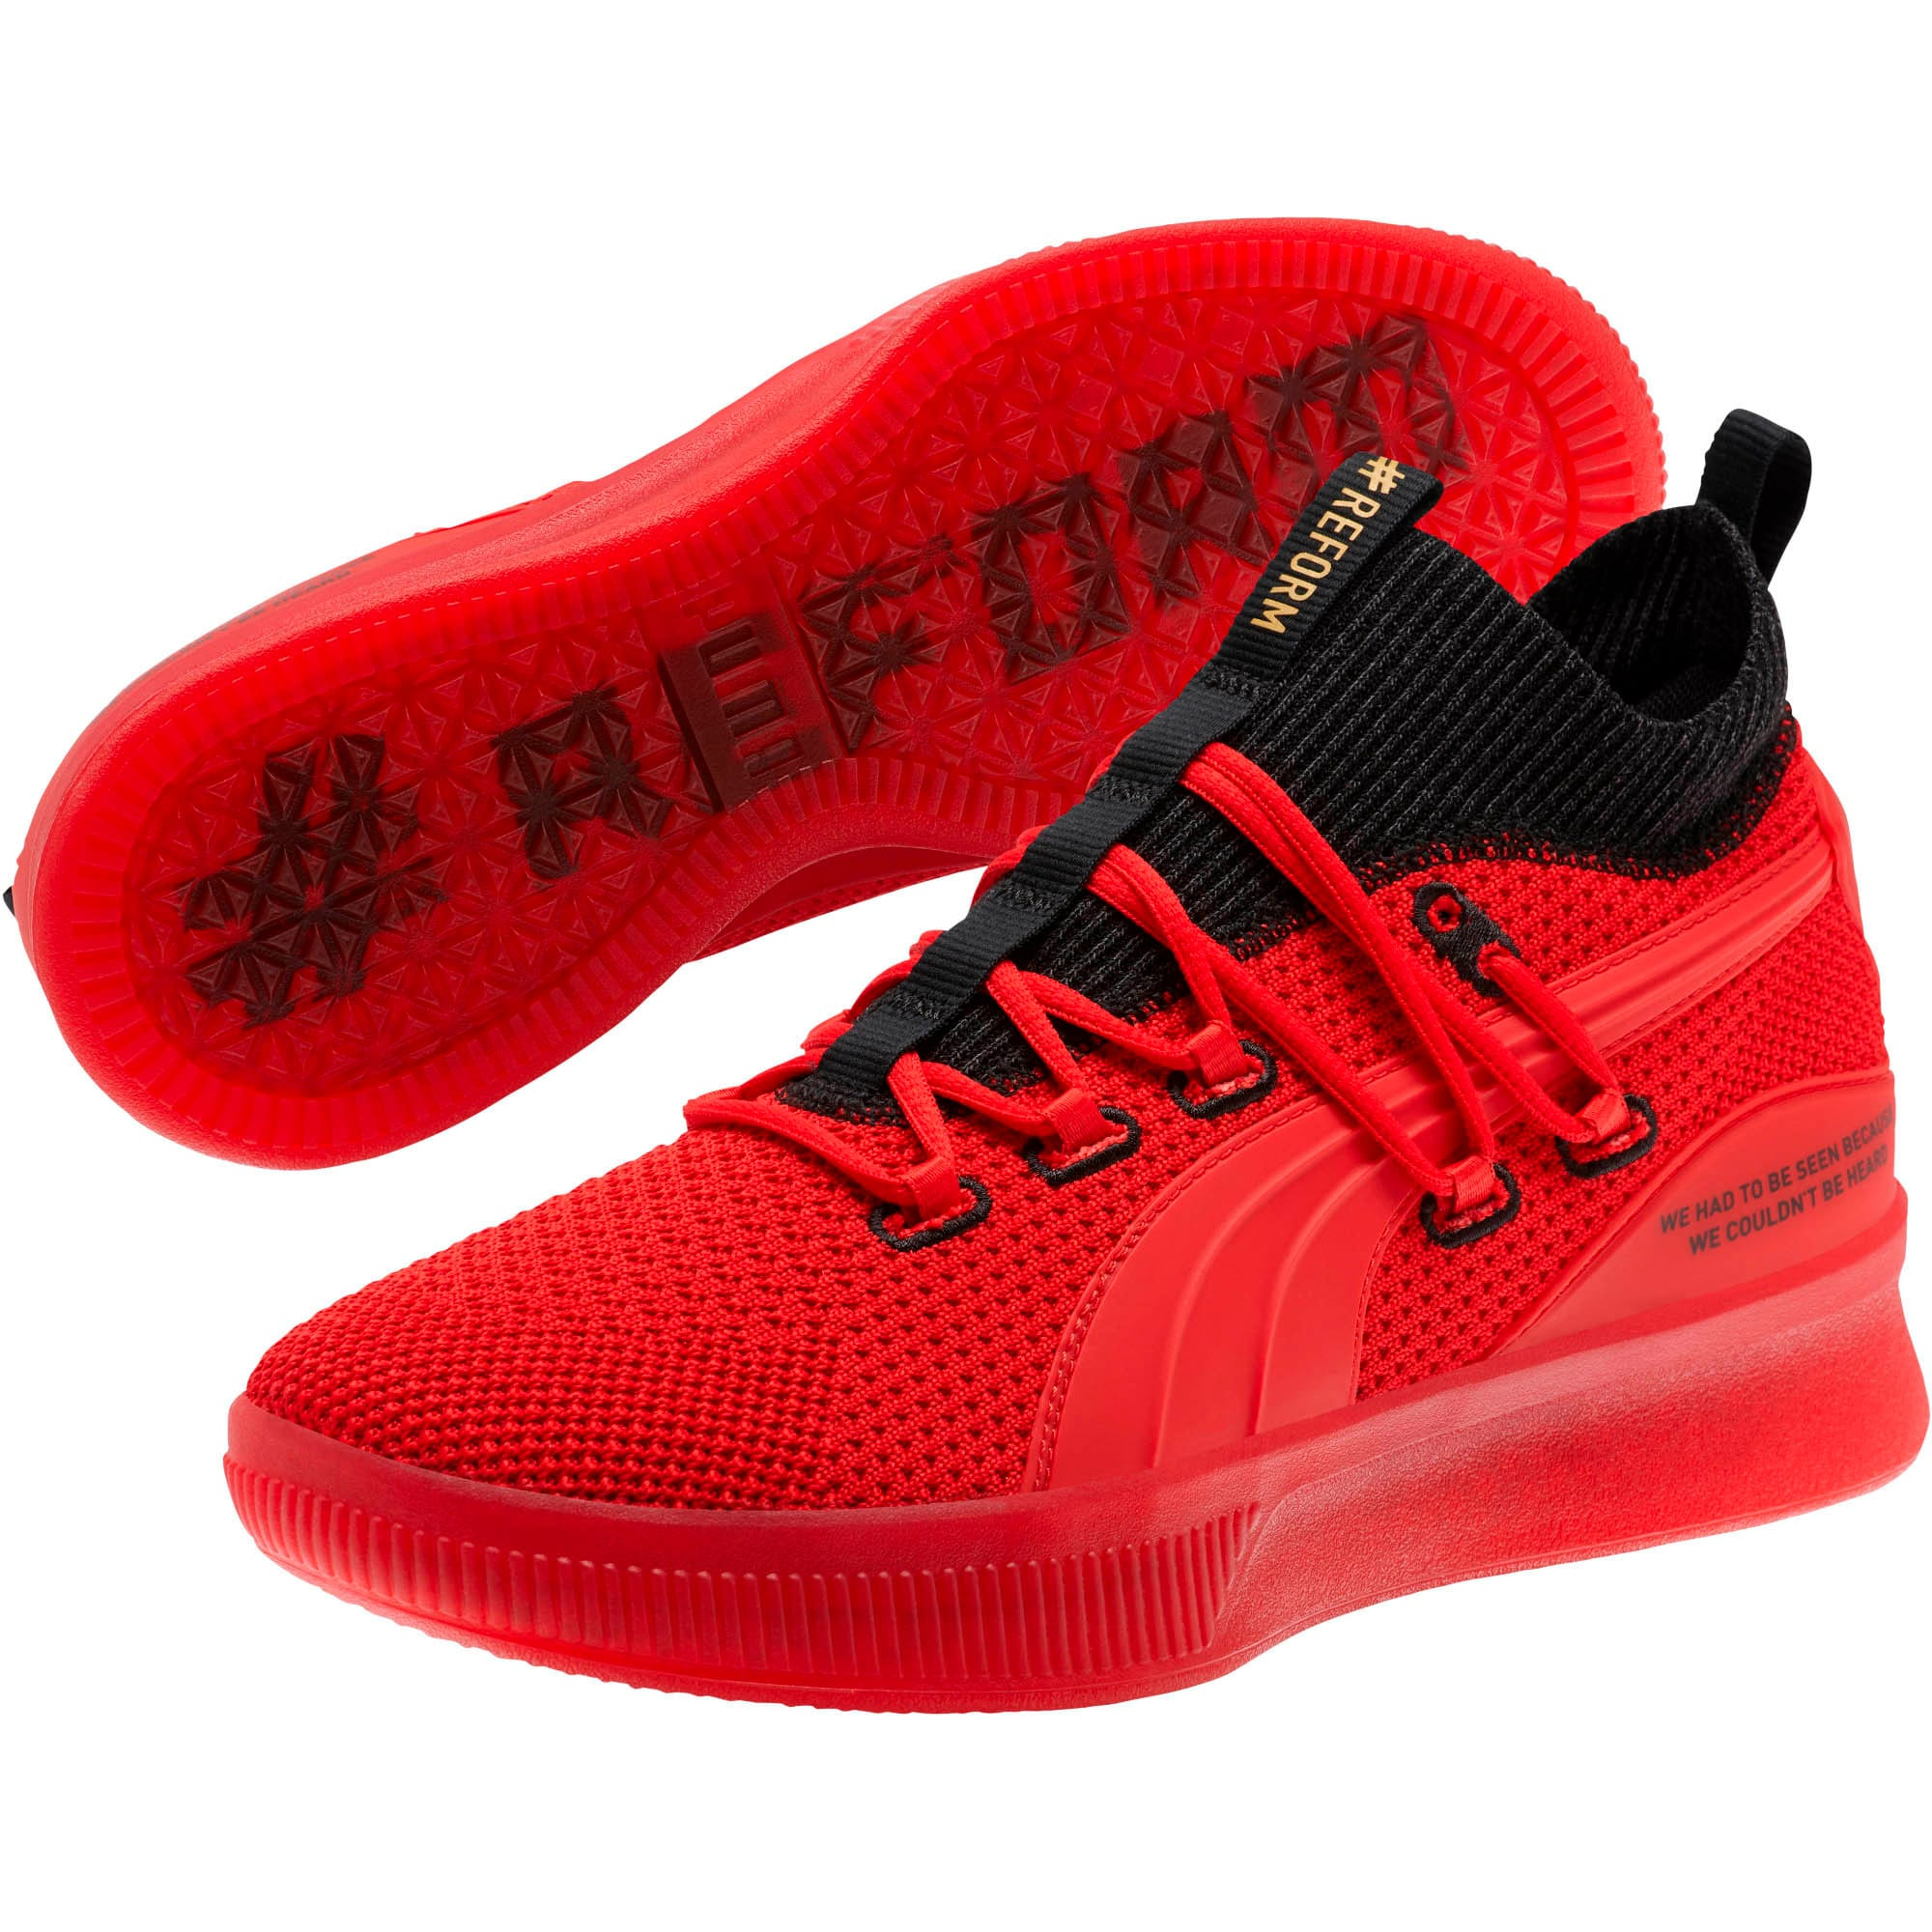 on sale 79dcf 0838f Clyde Court #REFORM Basketball Shoes